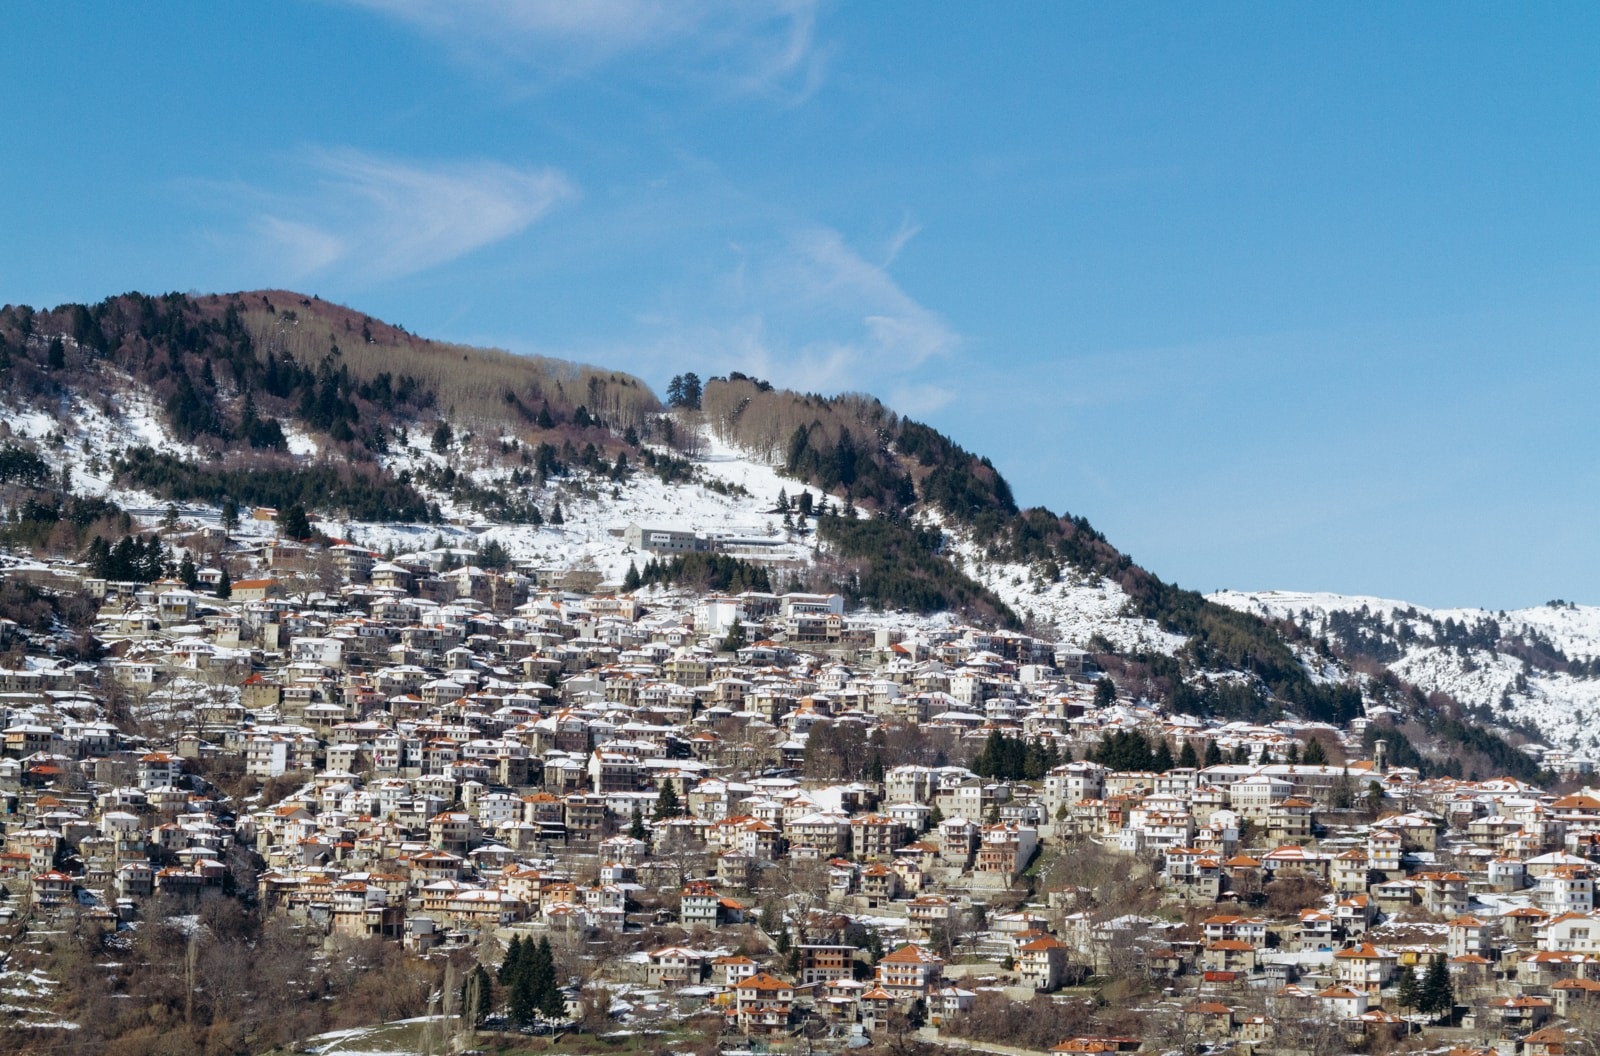 Metsovo, Greece - Monterrasol small group tours to Metsovo, Greece. Travel agency offers small group car tours to see Metsovo in Greece. Order small group tour to Metsovo with departure date on request.